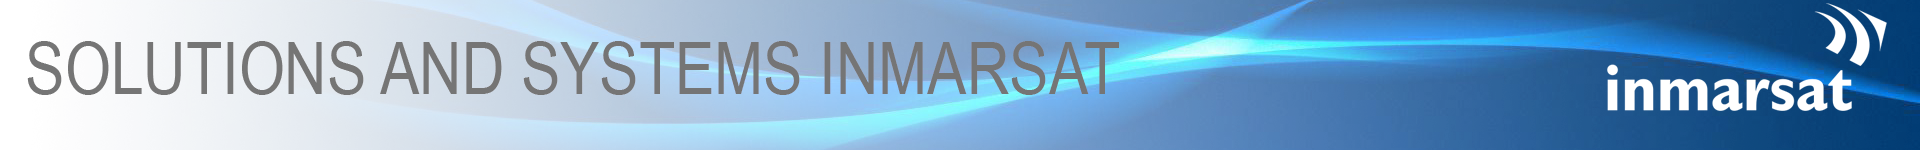 SOLUTIONS AND SYSTEMS INMARSAT